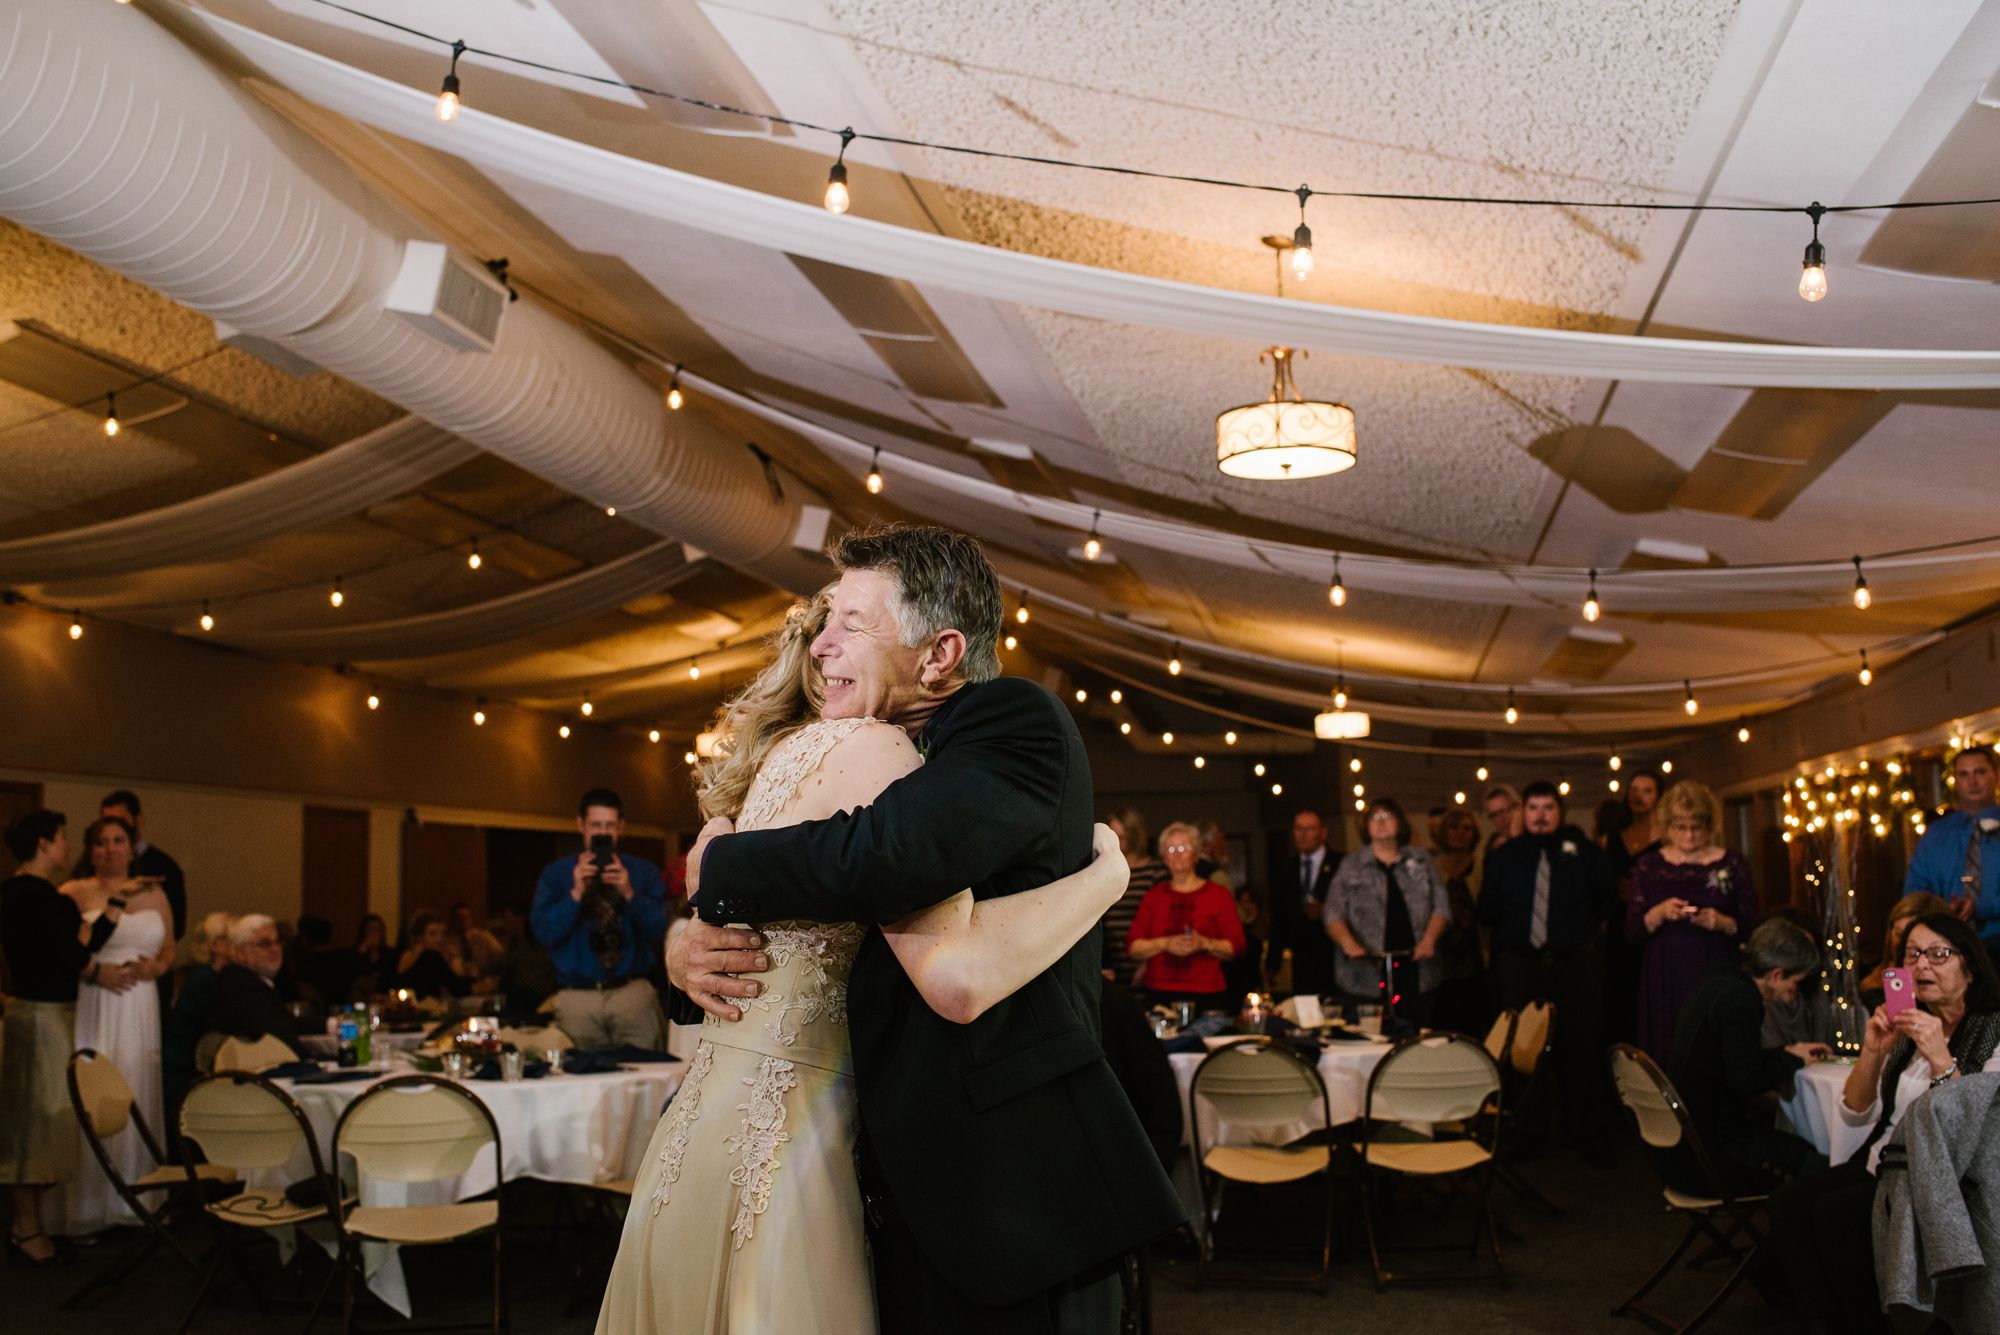 holland-fish-game-club-michigan-LGBTQ-winter-wedding-dancing-sydney-marie (4).jpg